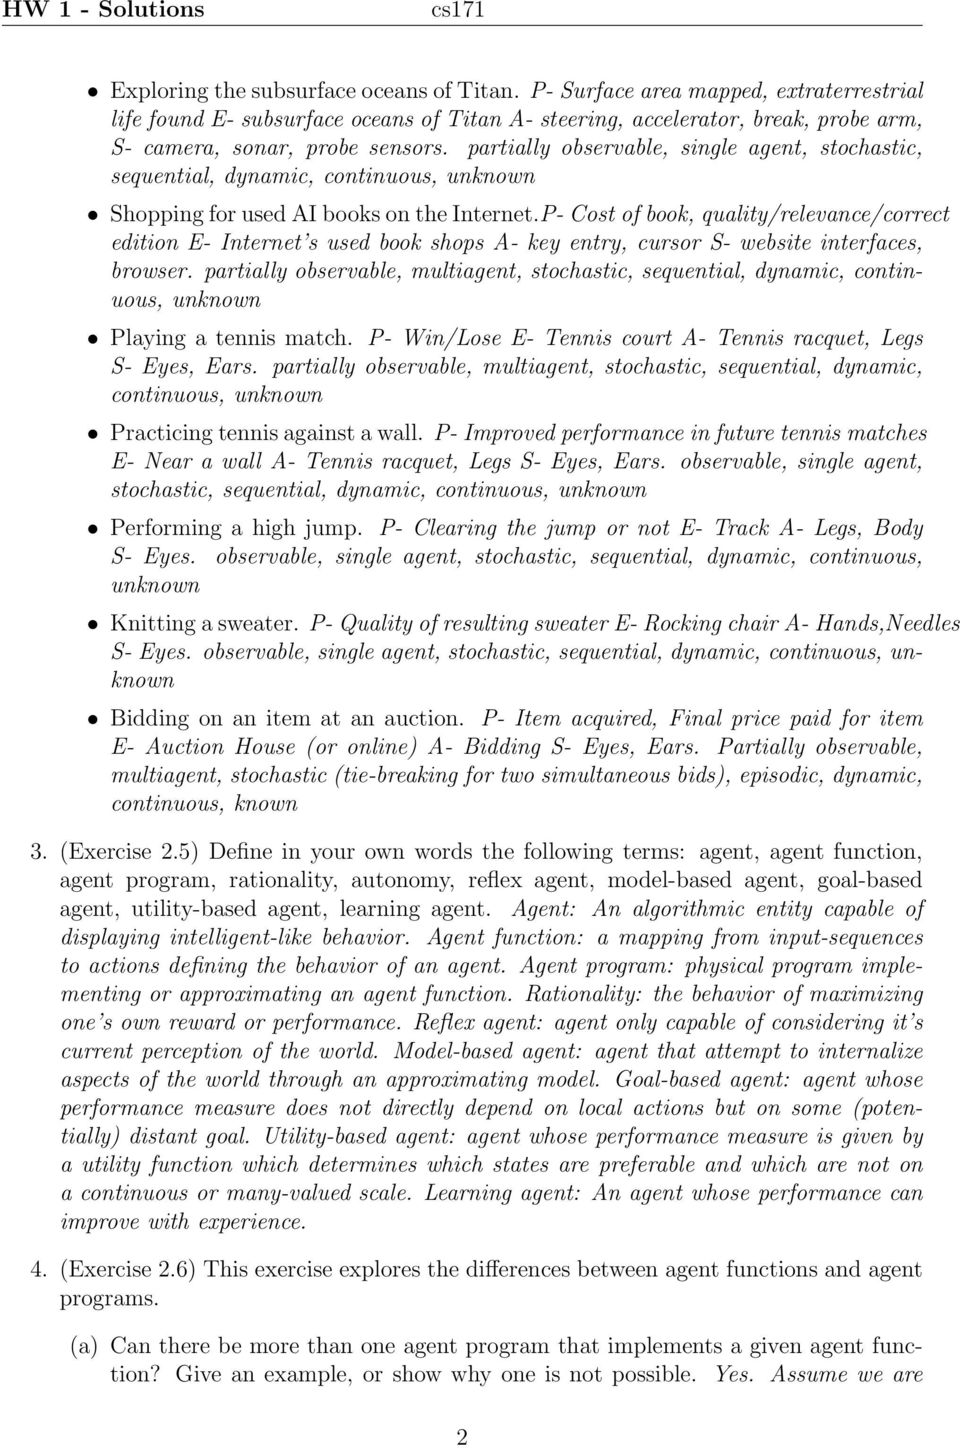 Cs171 Hw 1 Solutions Pdf Tennis Racket Diagram Glossary Of Terms Fix Your P Cost Book Quality Relevance Correct Edition E Internet S